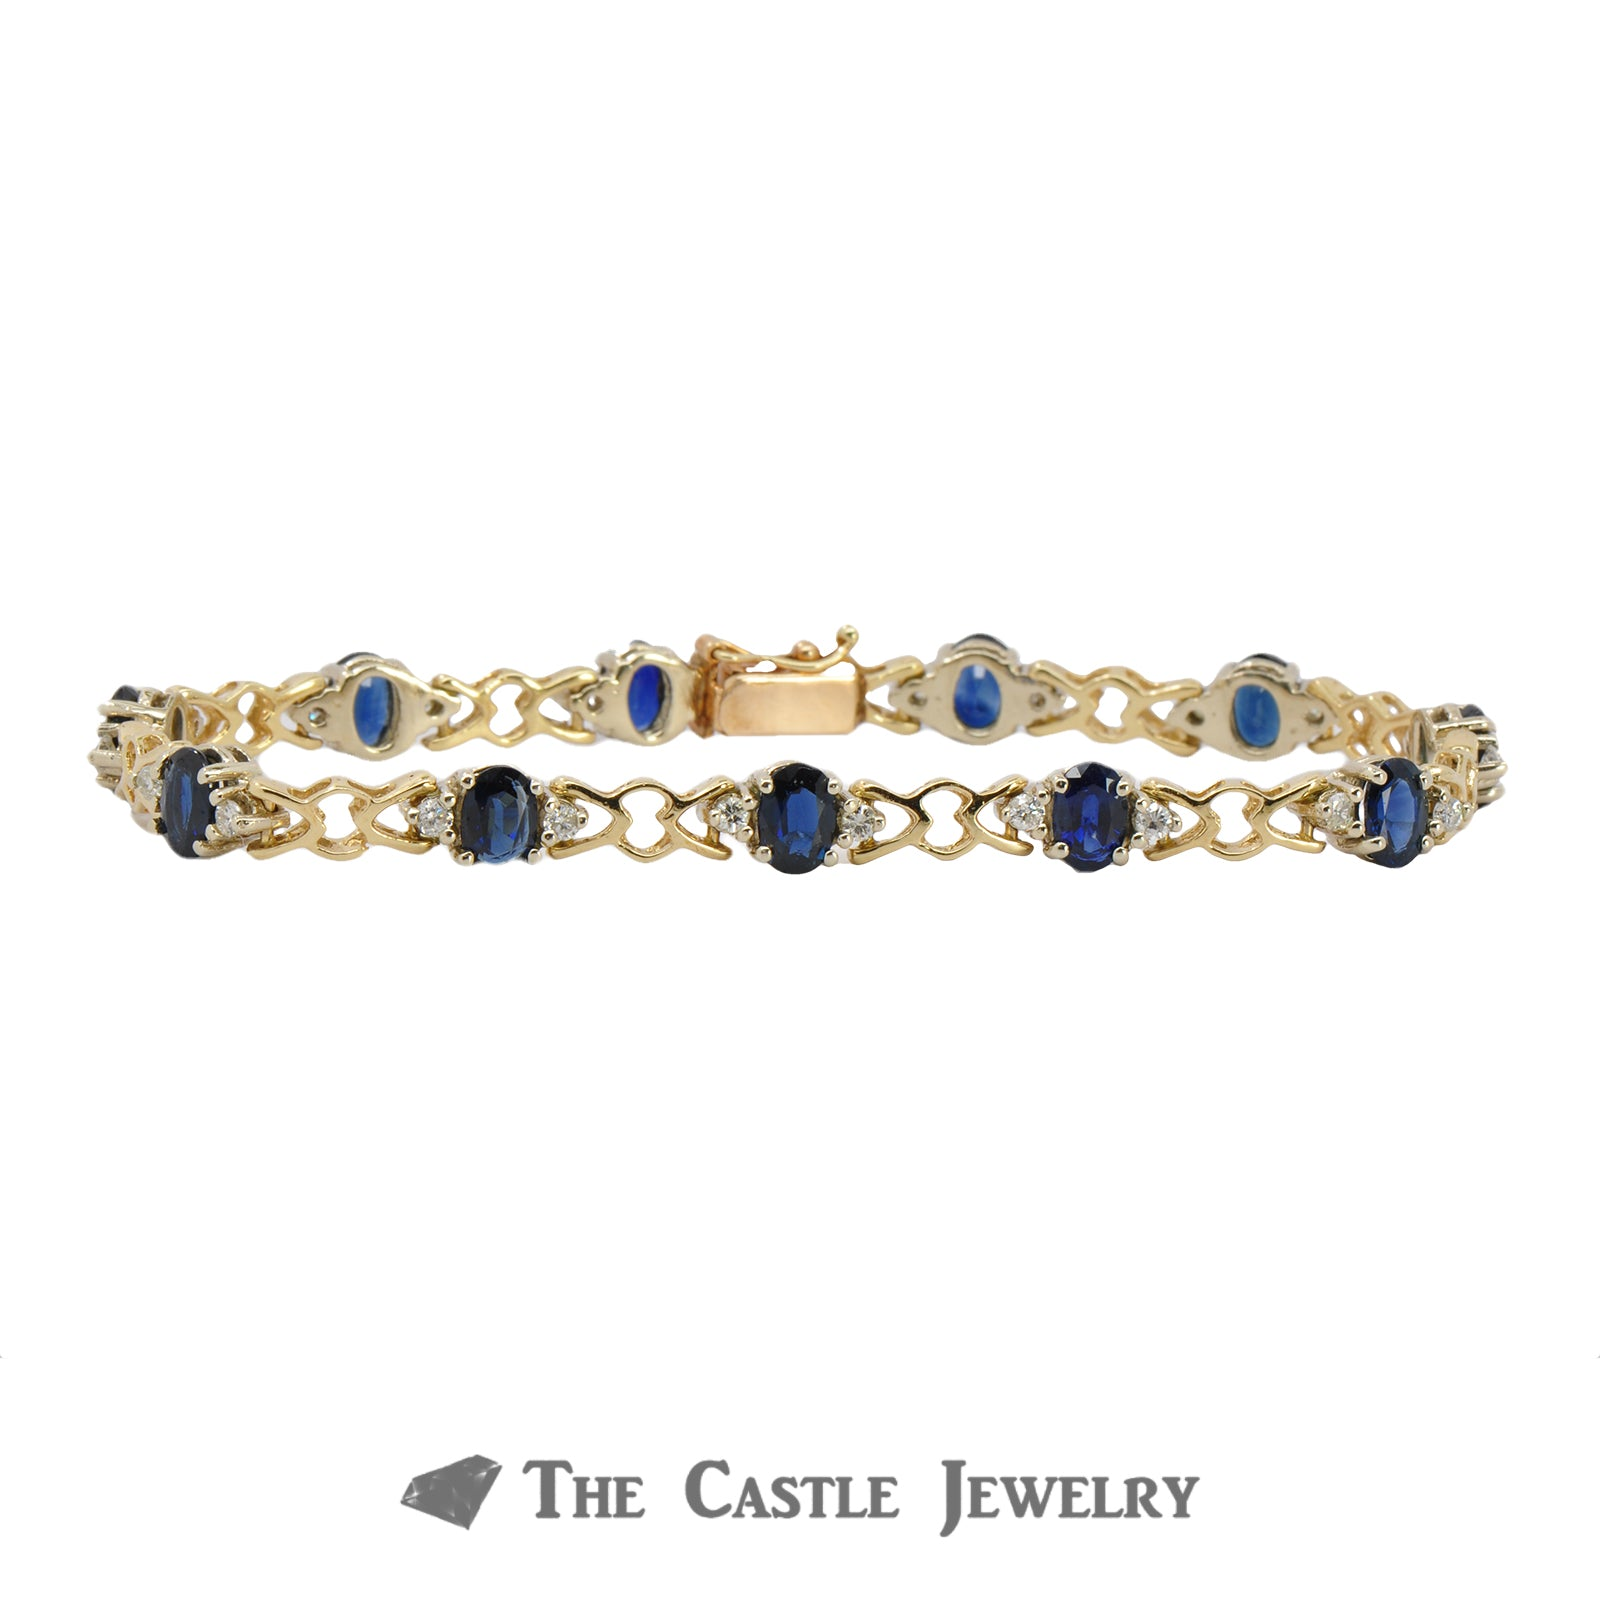 Oval Sapphire Bracelet with Diamond & Heart Accents in 14K Gold